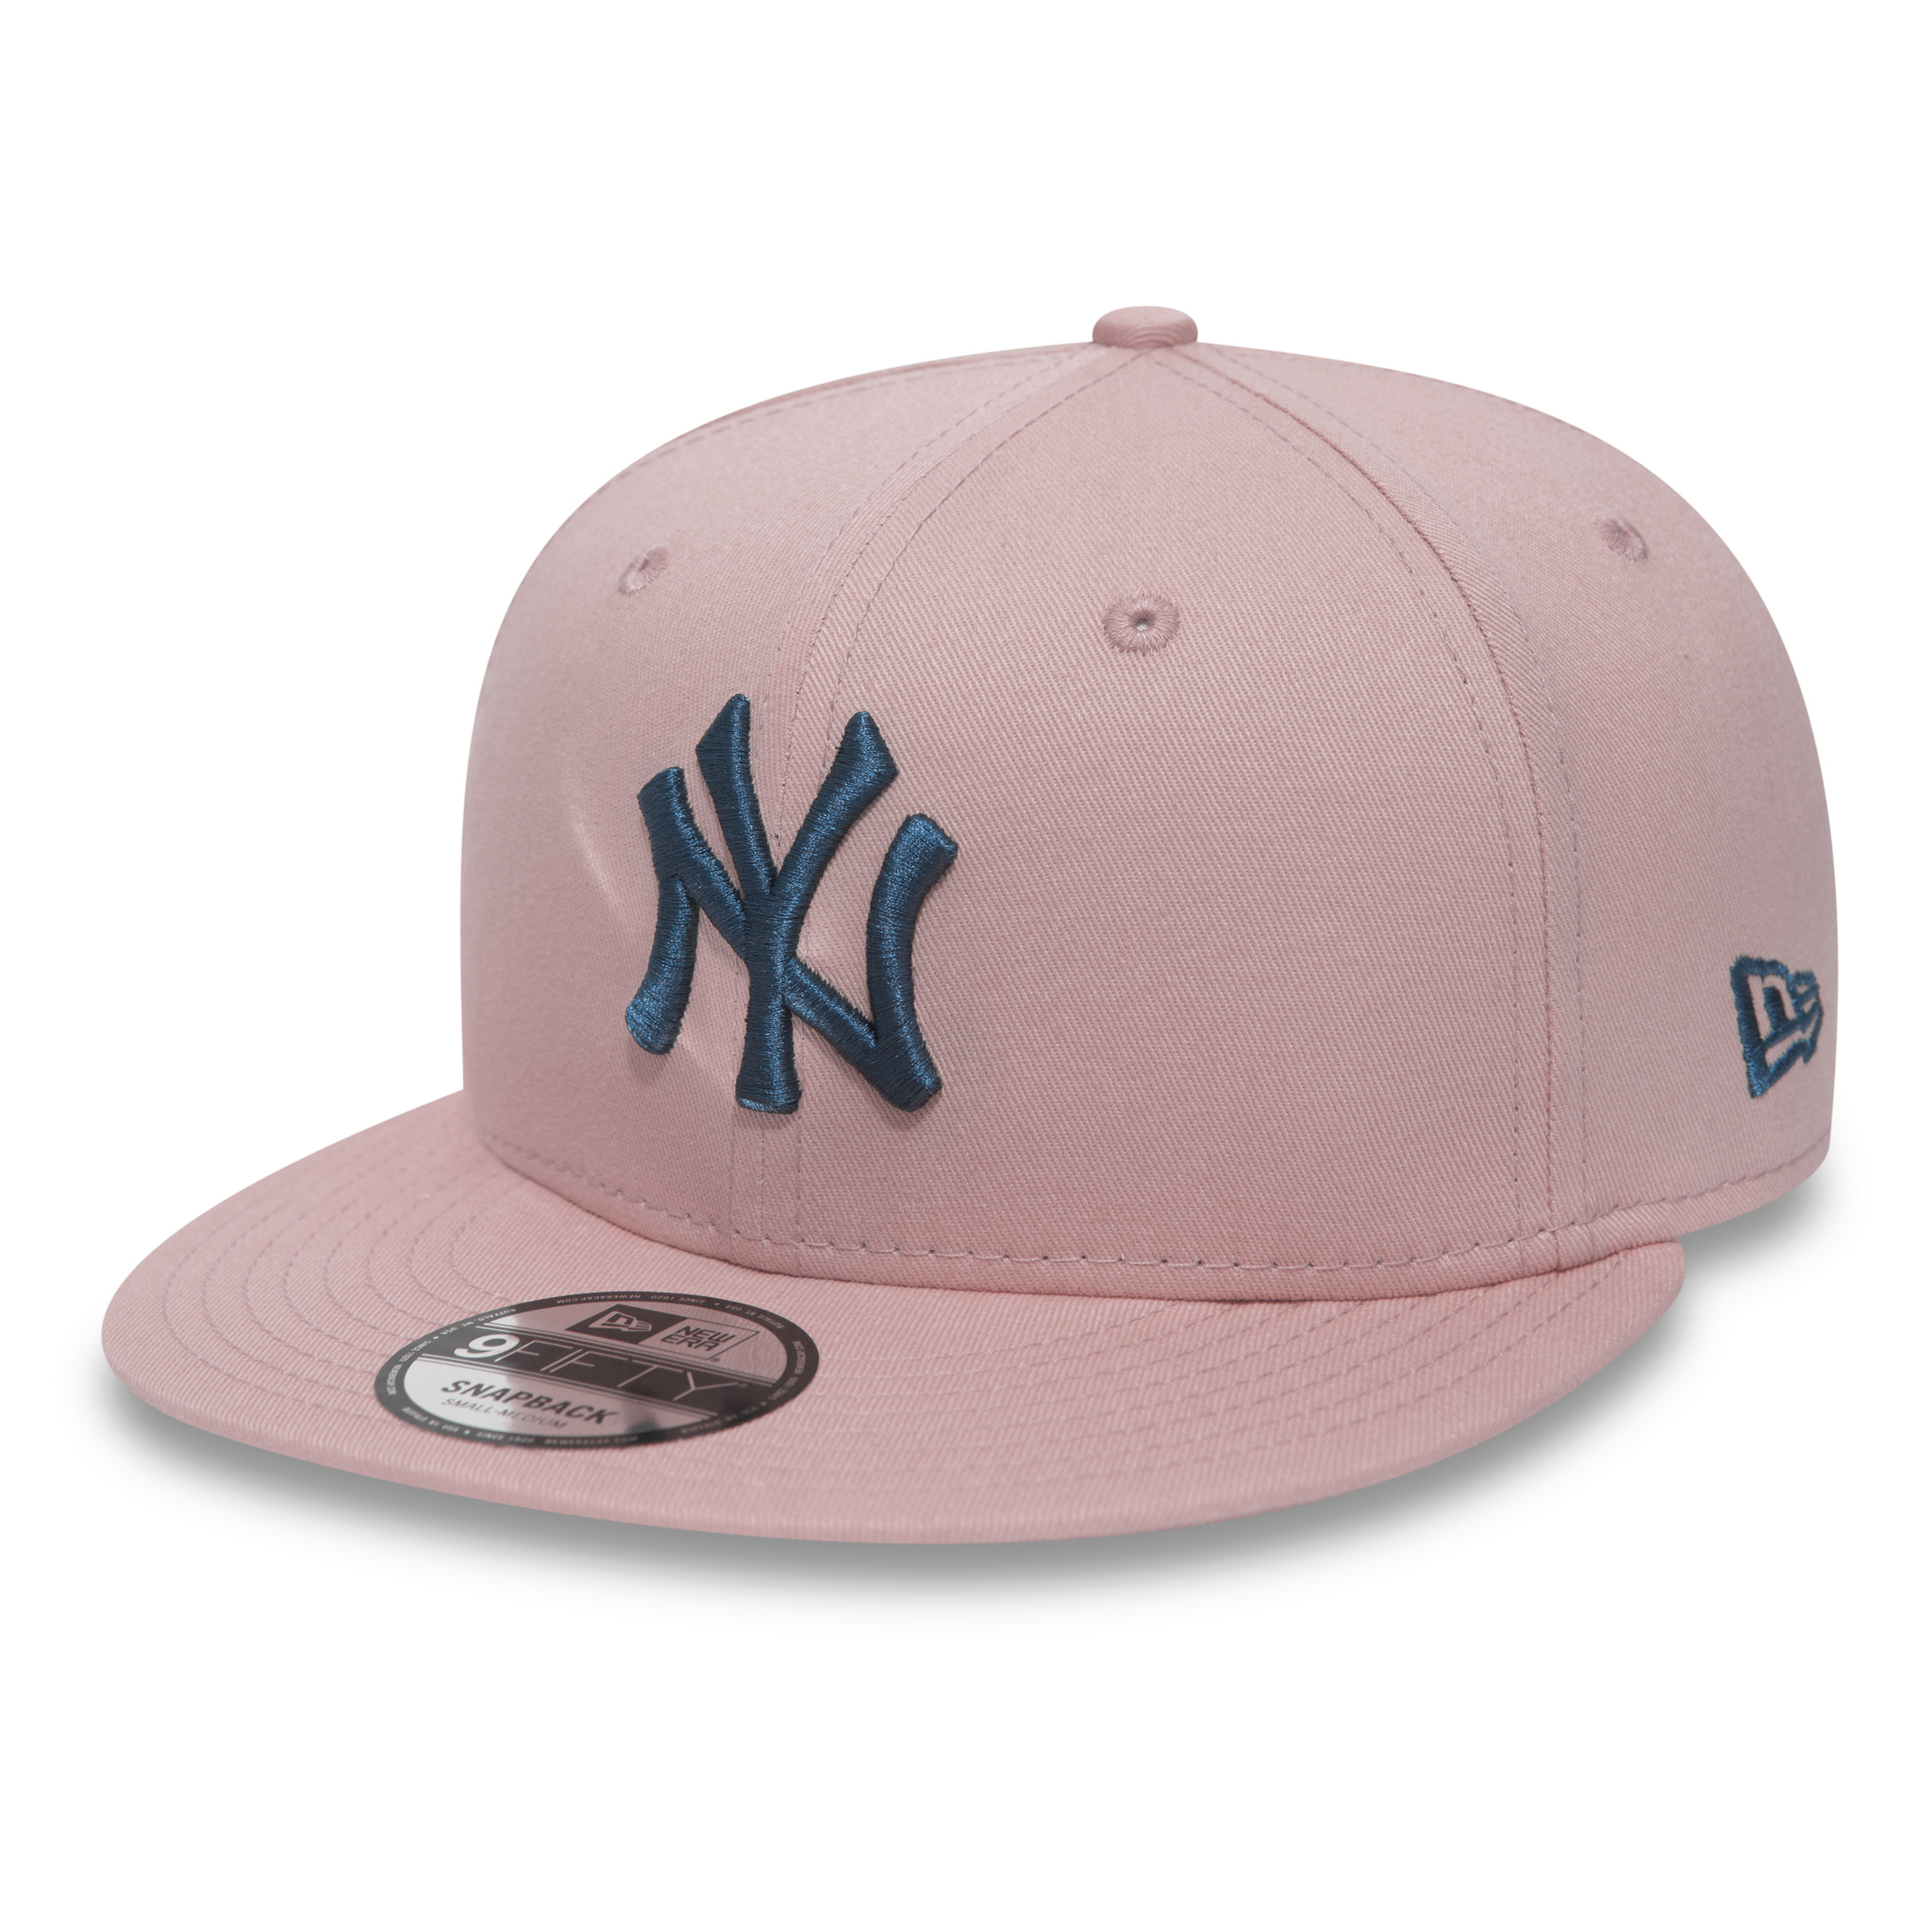 738ff7f835c65 New York Yankees Essential Pink 9FIFTY Snapback